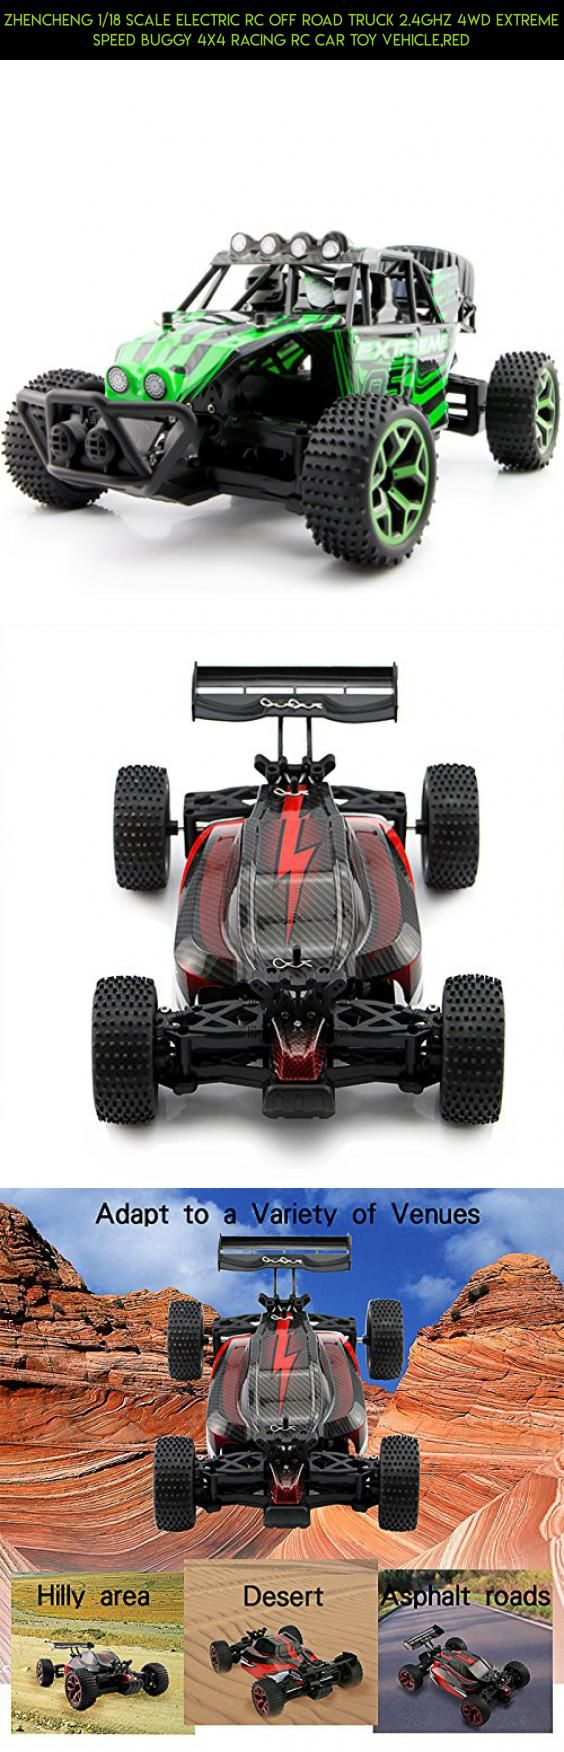 Pinterest Teki 25 Den Fazla En Iyi Electric Rc Cars Fikri